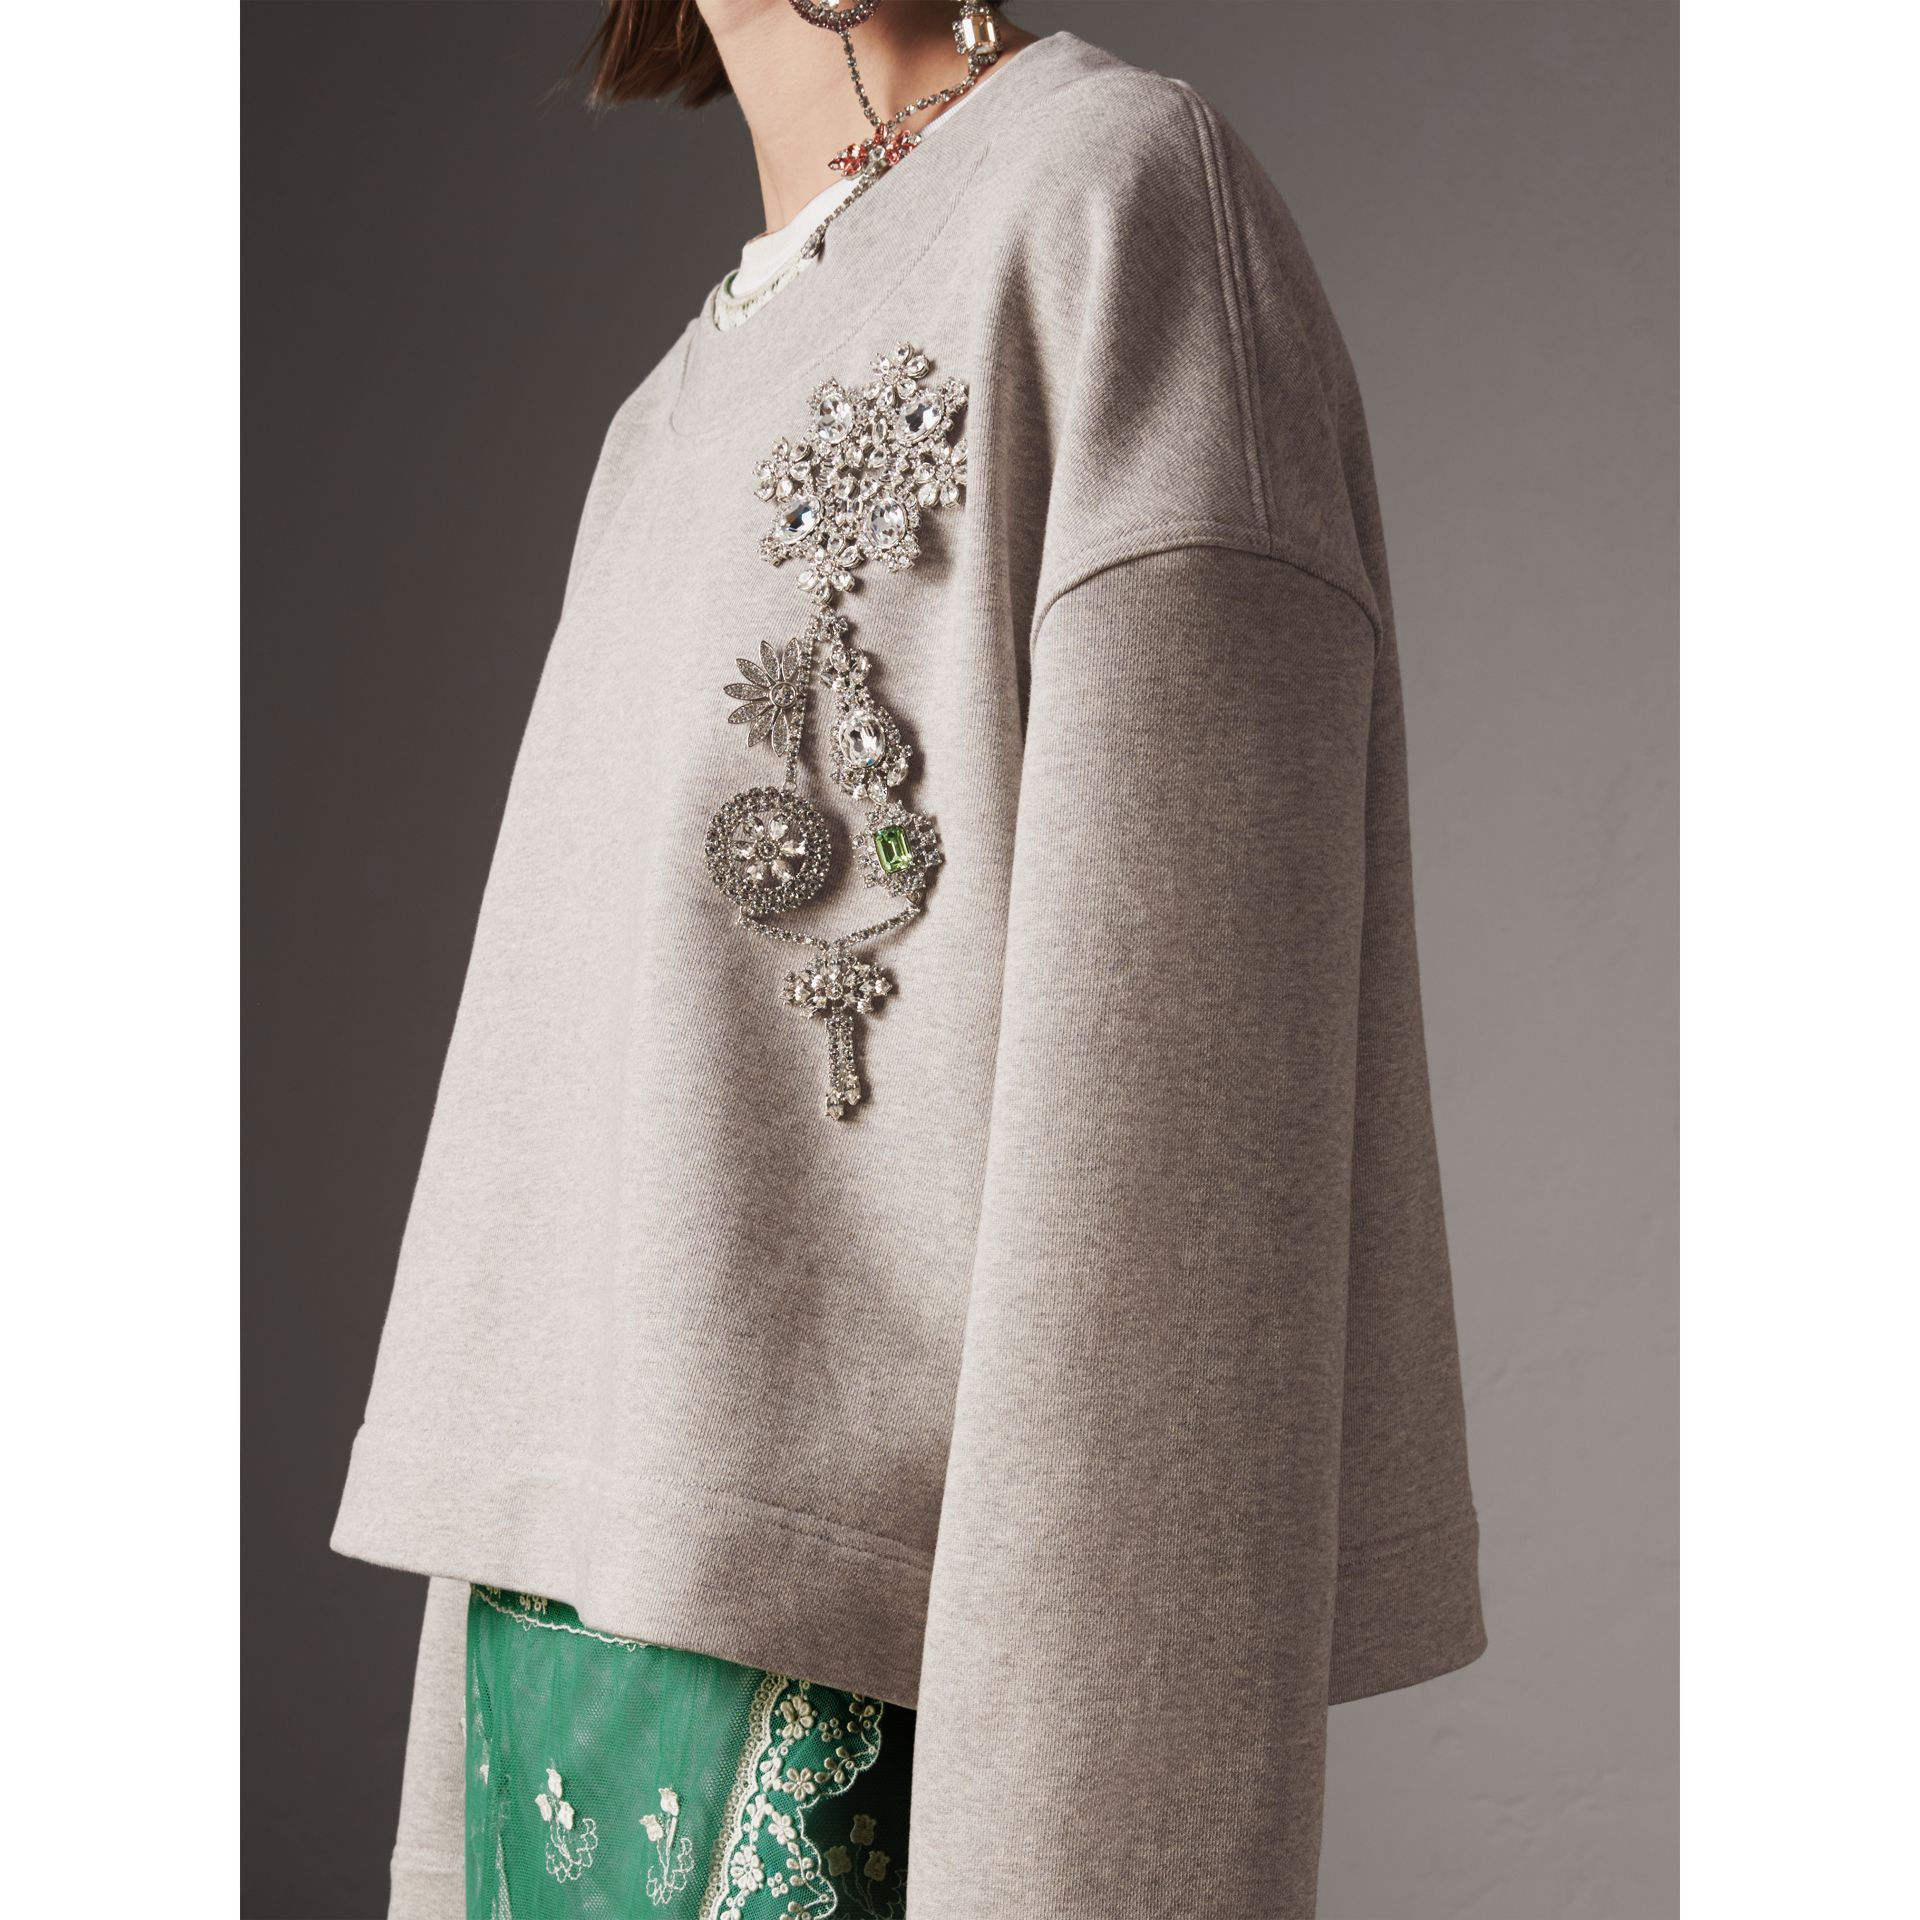 Cropped Sweatshirt with Crystal Brooch in Light Grey Melange - Women | Burberry United States - gallery image 1